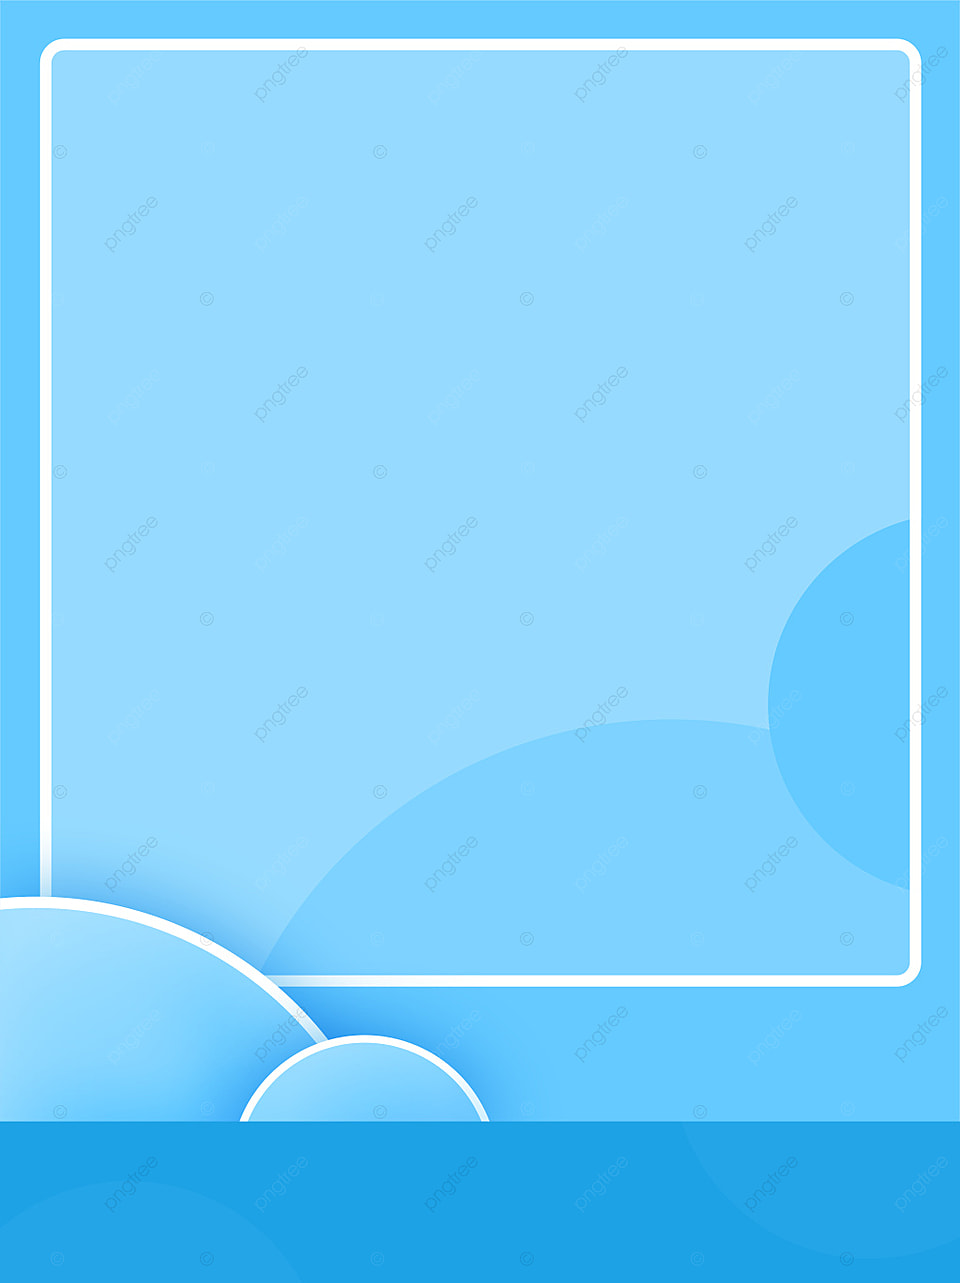 Background Biru Muda Png : background, Small, Fresh, Valentines, Display, Board, Background,, Fantasy, Romantic, Background, Image, Download